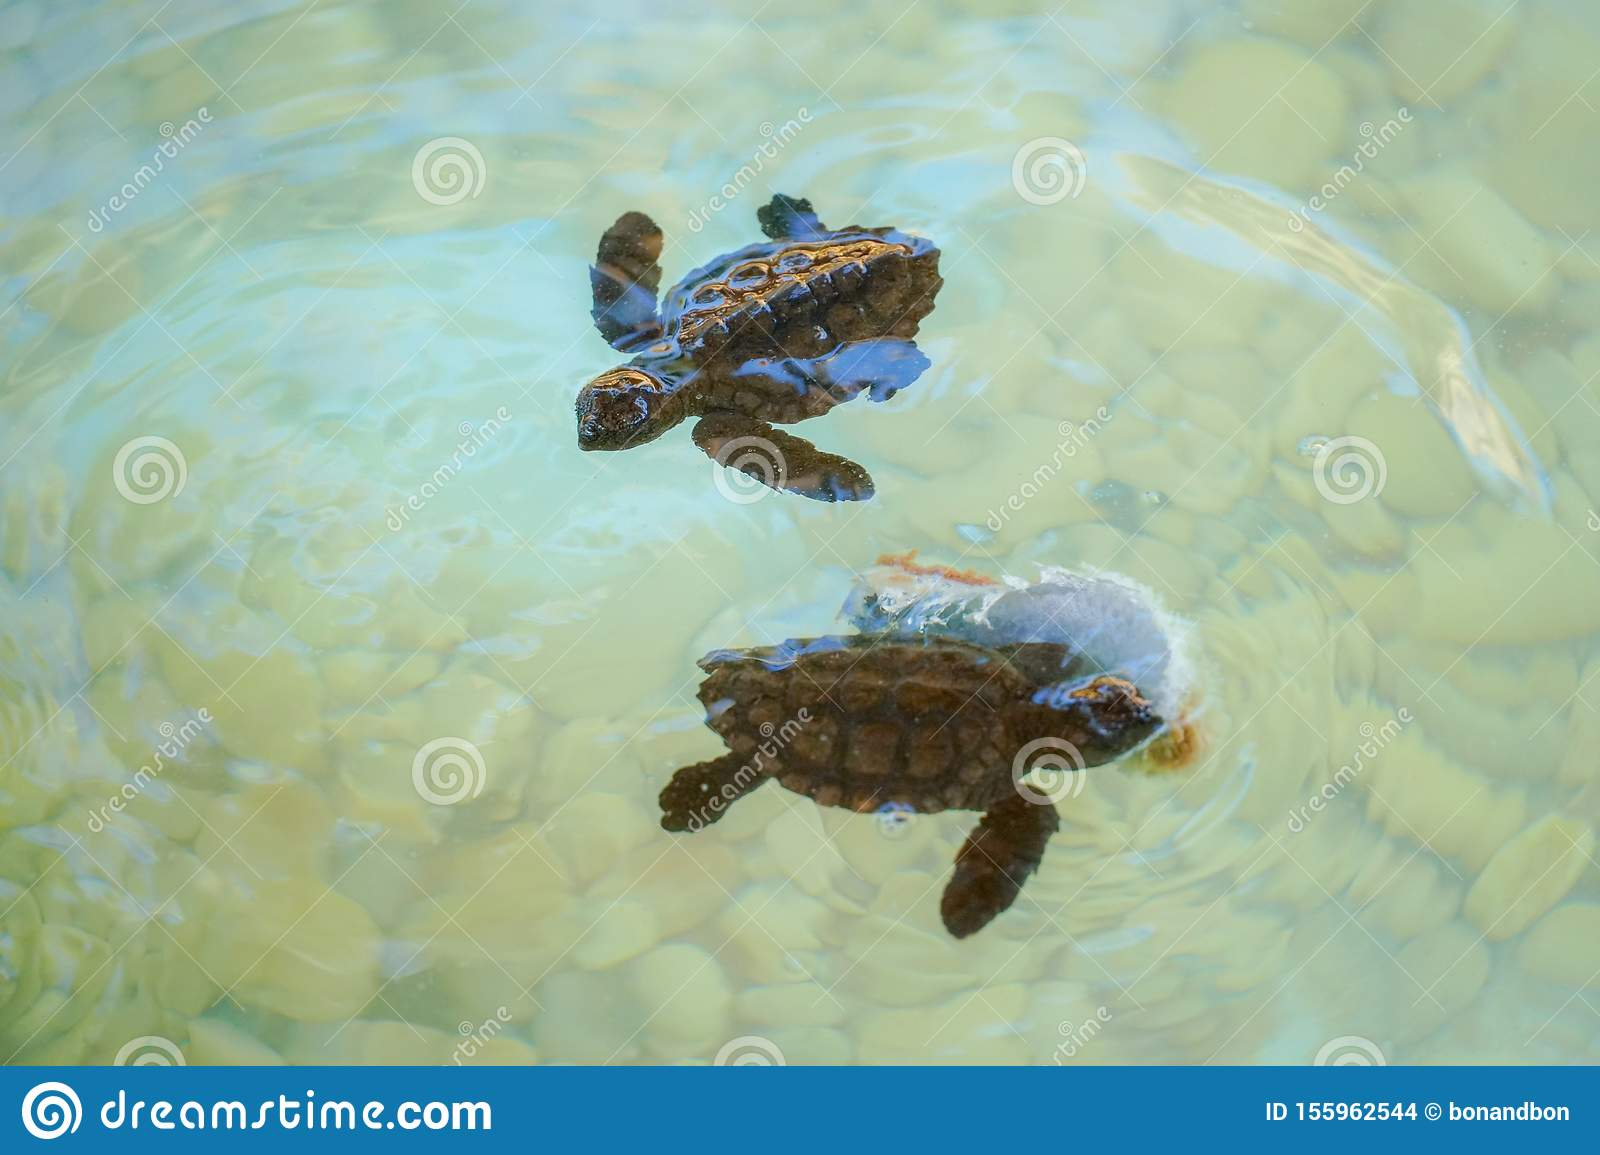 Baby sea turtles swimming and catching food